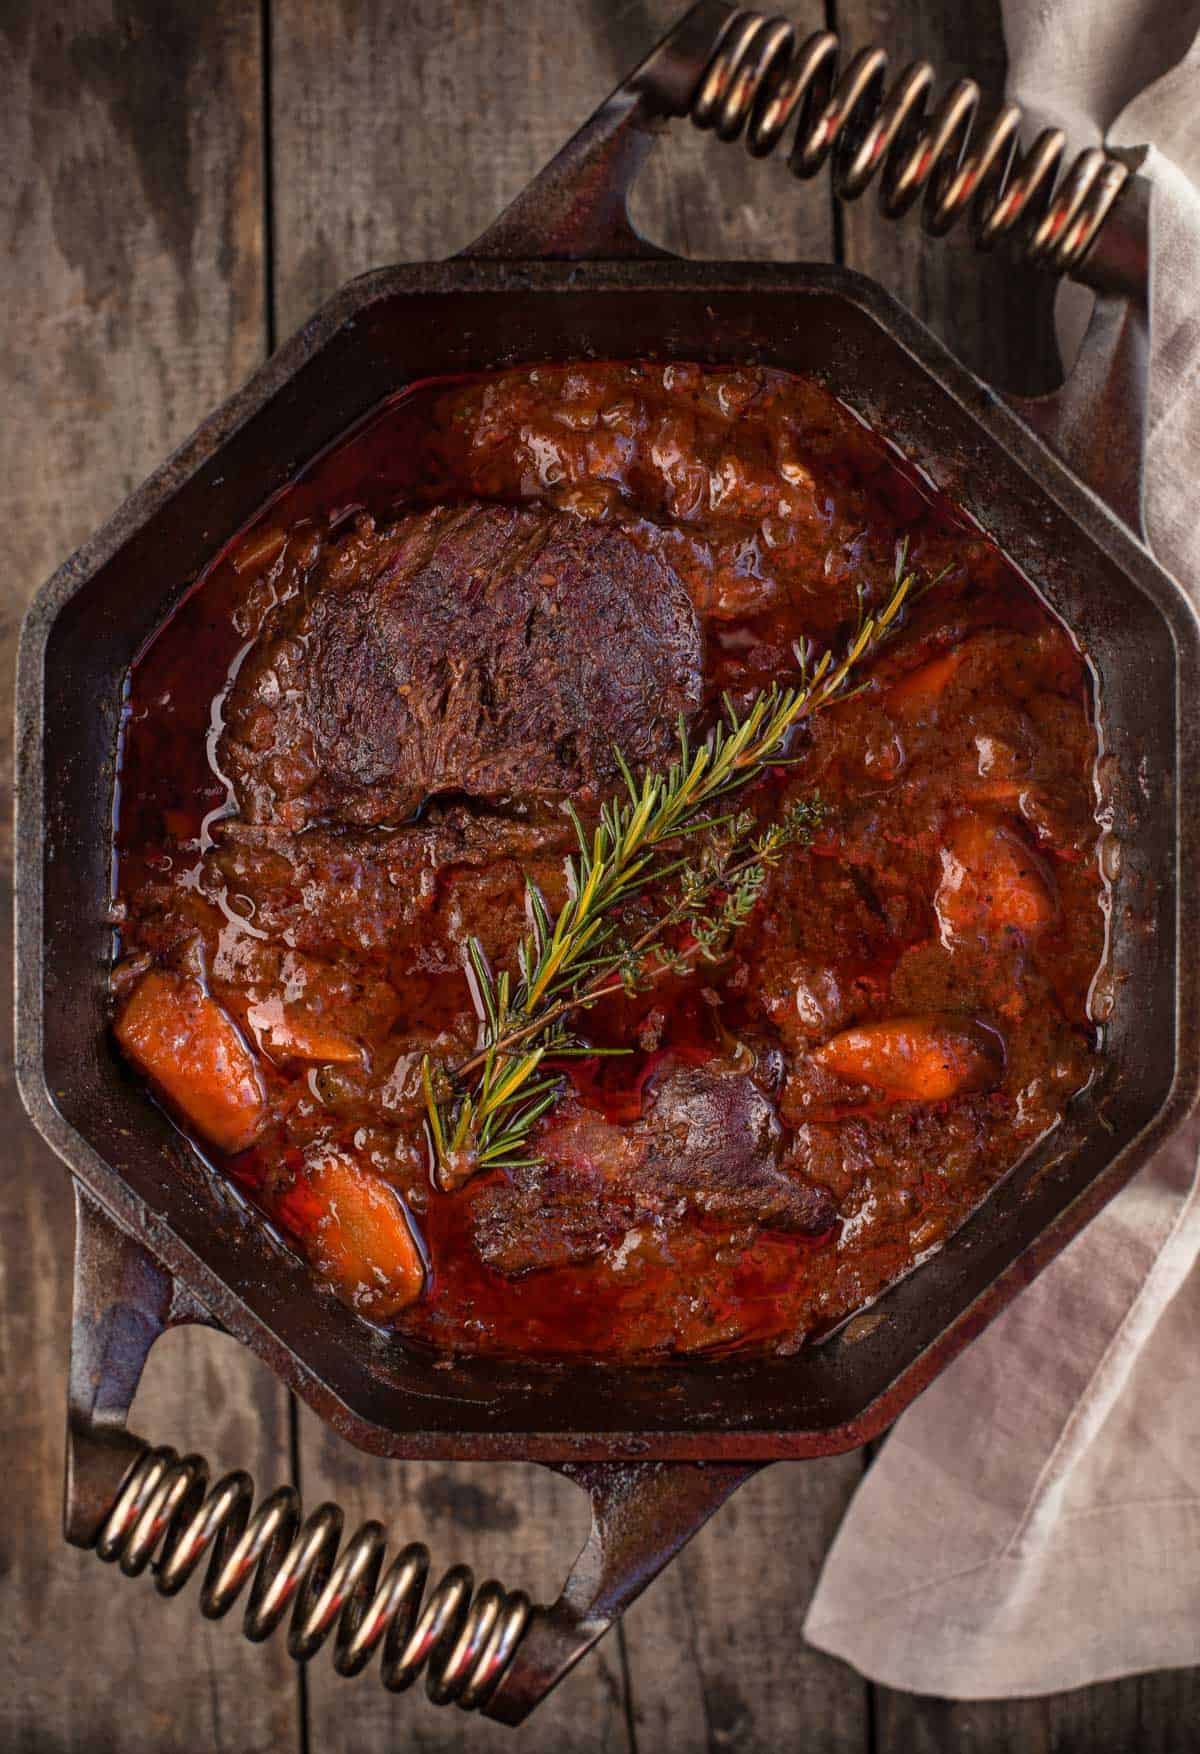 A smoked chuck roast pot roast stew in a large cast iron pan